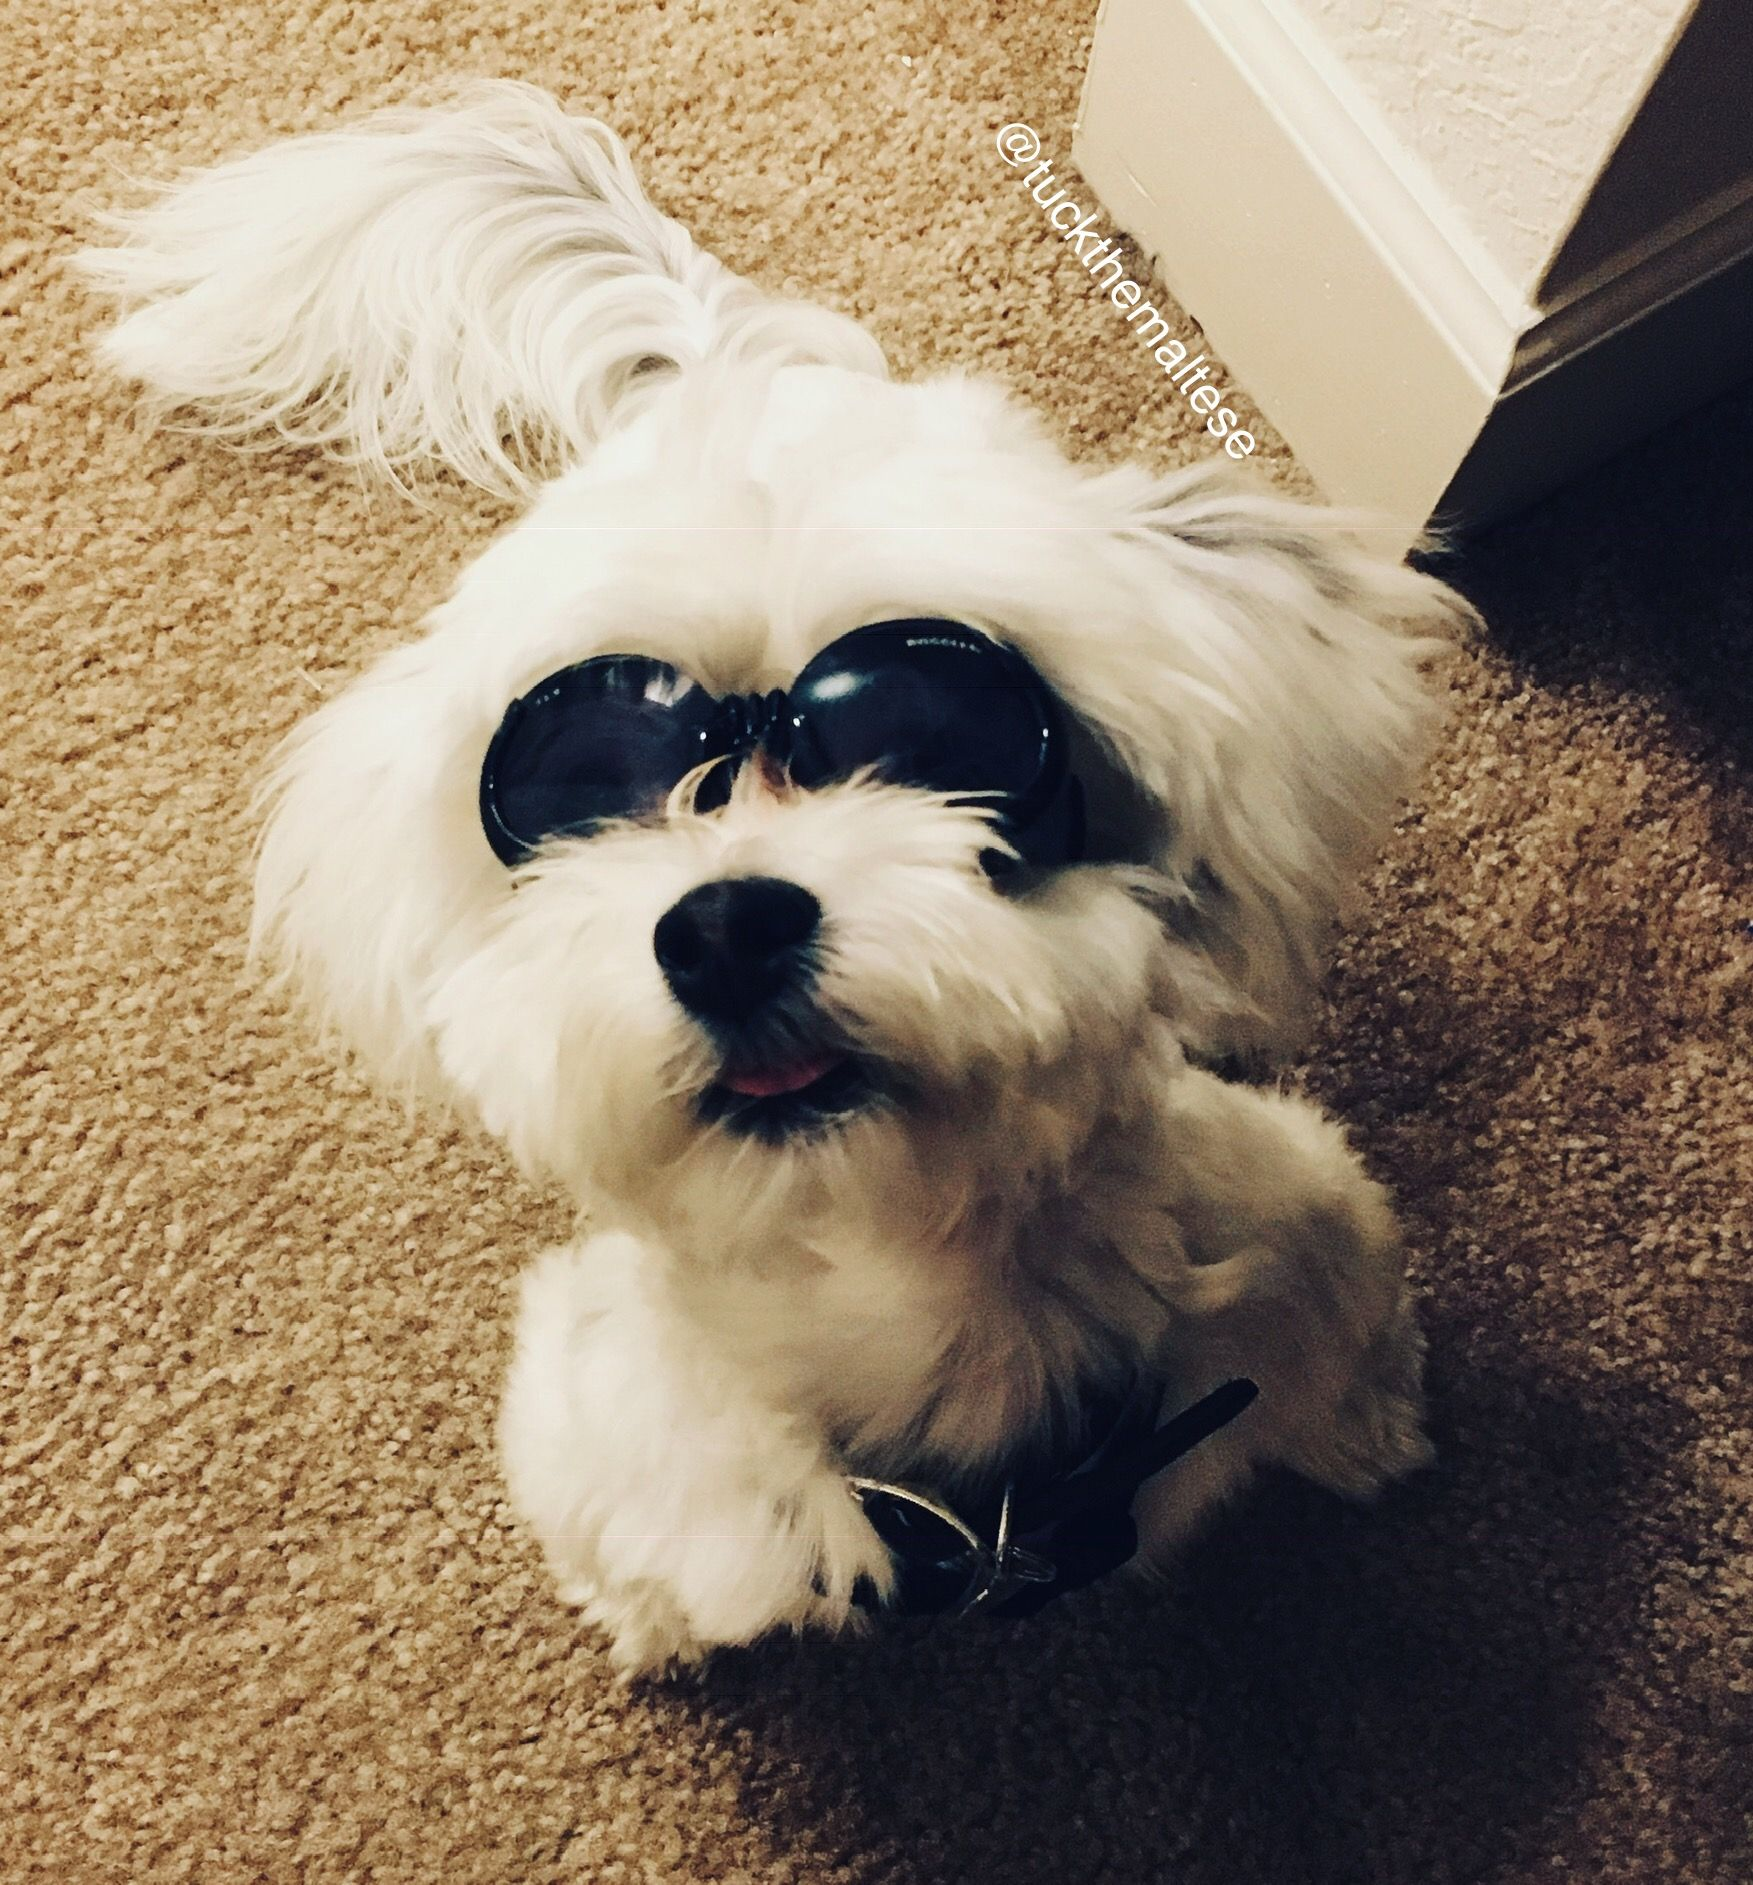 The Cutest Shelter Pup Meet Tuck The Maltese Treats And Tails Spotty Dog Pup Dog Care